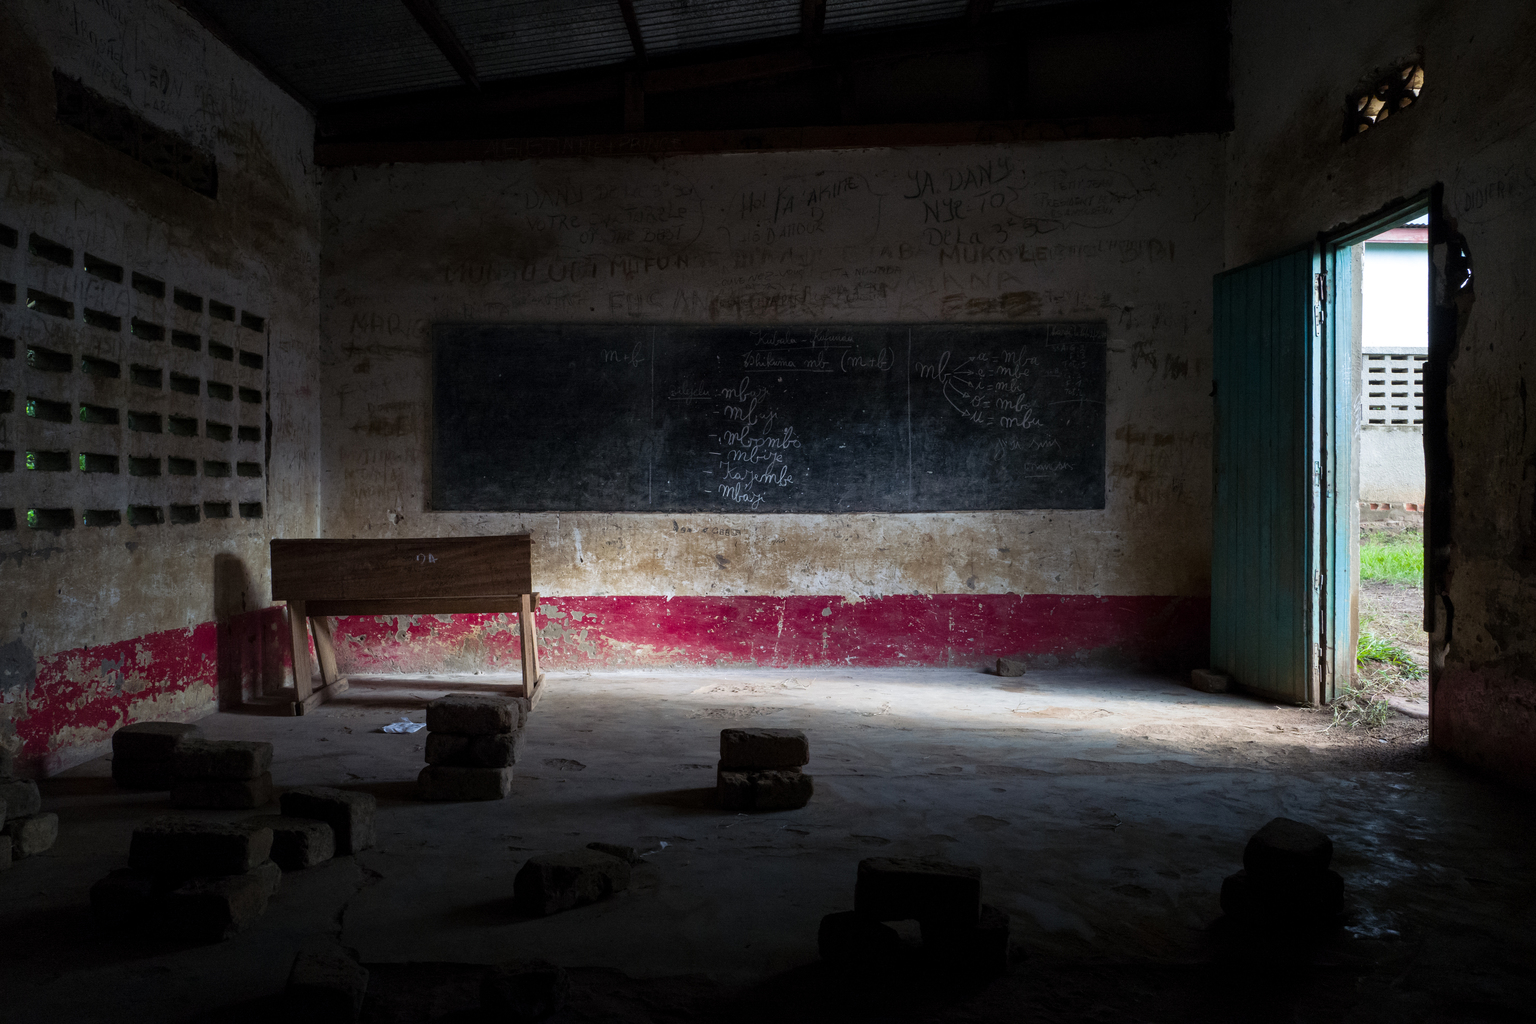 Tshinyama Primary School is one of four schools plundered during the clashes between Kamuina Nsapu movement rebels and the police in March 2017 in Nganza commune, 4km from Kamina, the capital of Kasai province Occidental, Democratic Republic of the Congo. - L'école primaire Tshinyama est l'une des quatre écoles pillées lors des affrontements entre les rebelles du mouvement Kamuina Nsapu et les forces de l'ordre en mars 2017 dans la commune de Nganza, à 4km de Kamina, capitale de la province du Kasaï Occidental, en République Démocratique du Congo. In August 2016, fighting broke out in one of the Democratic Republic of Congo's (DRC) poorest regions - Kasai - after a traditional leader was killed in clashes with security forces. The situation deteriorated in 2017, unleashing a wave of violence that has now engulfed nine of the country's 26 provinces.